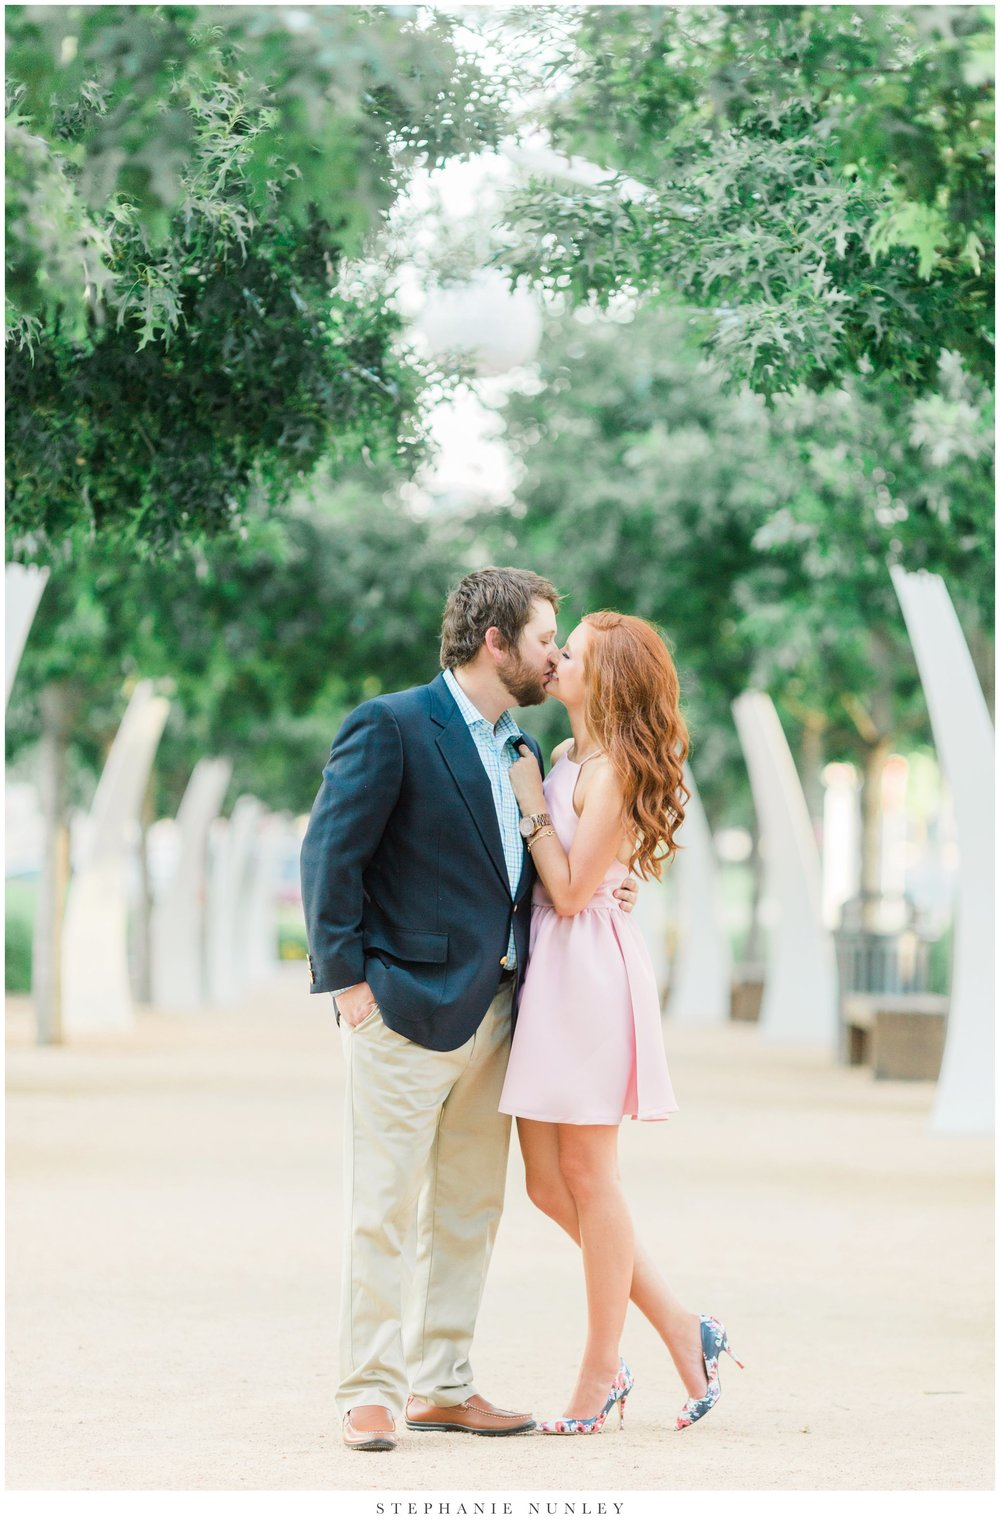 kate-spade-engagement-photos-0023.jpg